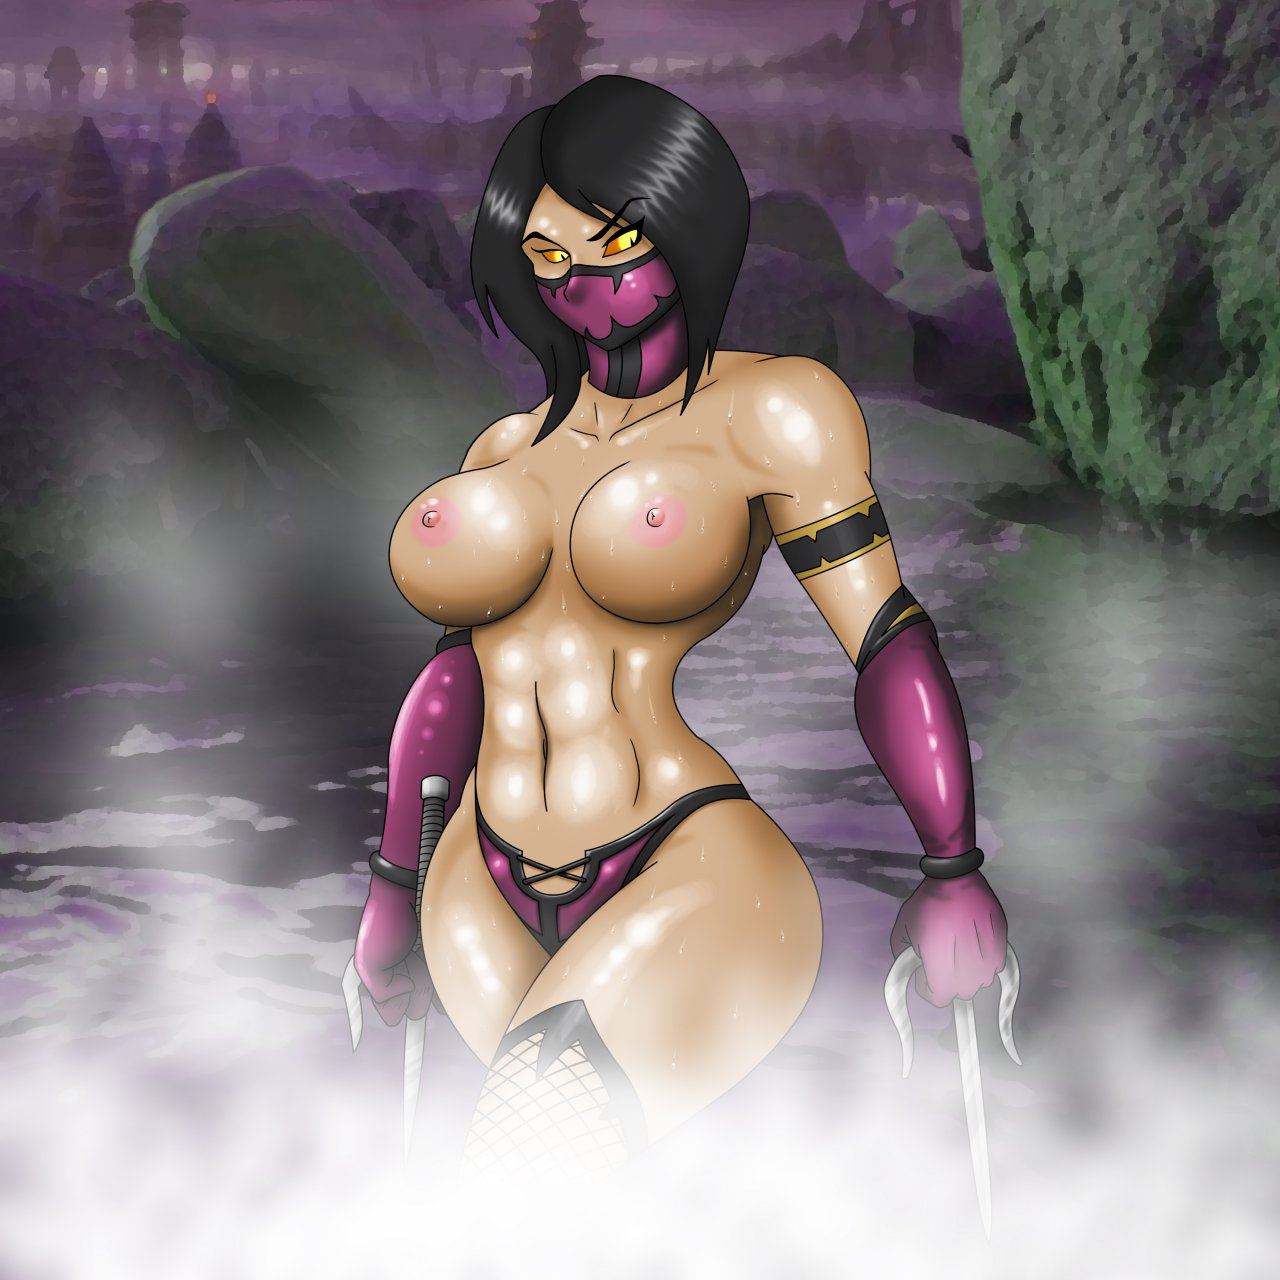 Mileena naked softcore photo